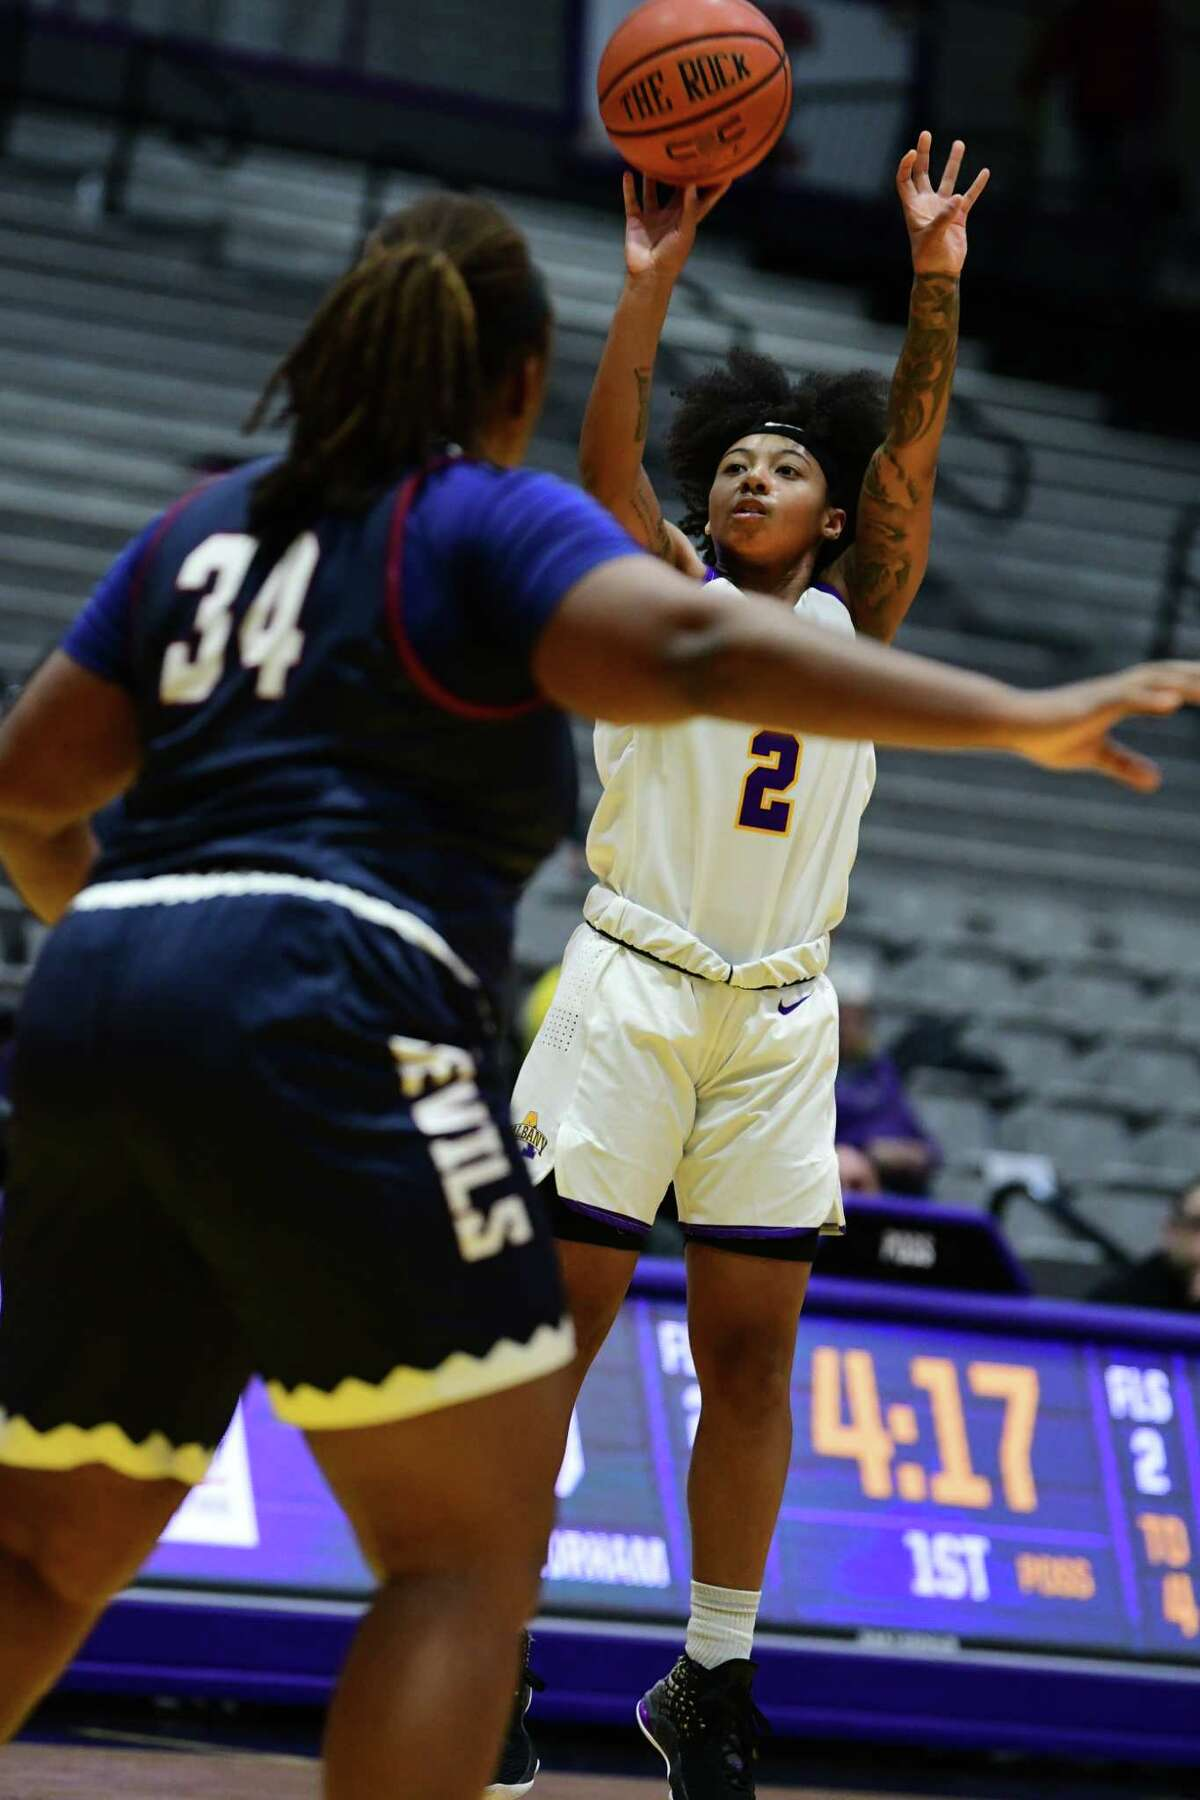 University at Albany's Kyara Frames puts up a shot during a basketball game against Fairleigh Dickinson at SEFCU Arena on Wednesday, Dec. 4, 2019 in Albany, N.Y. (Lori Van Buren/Times Union)